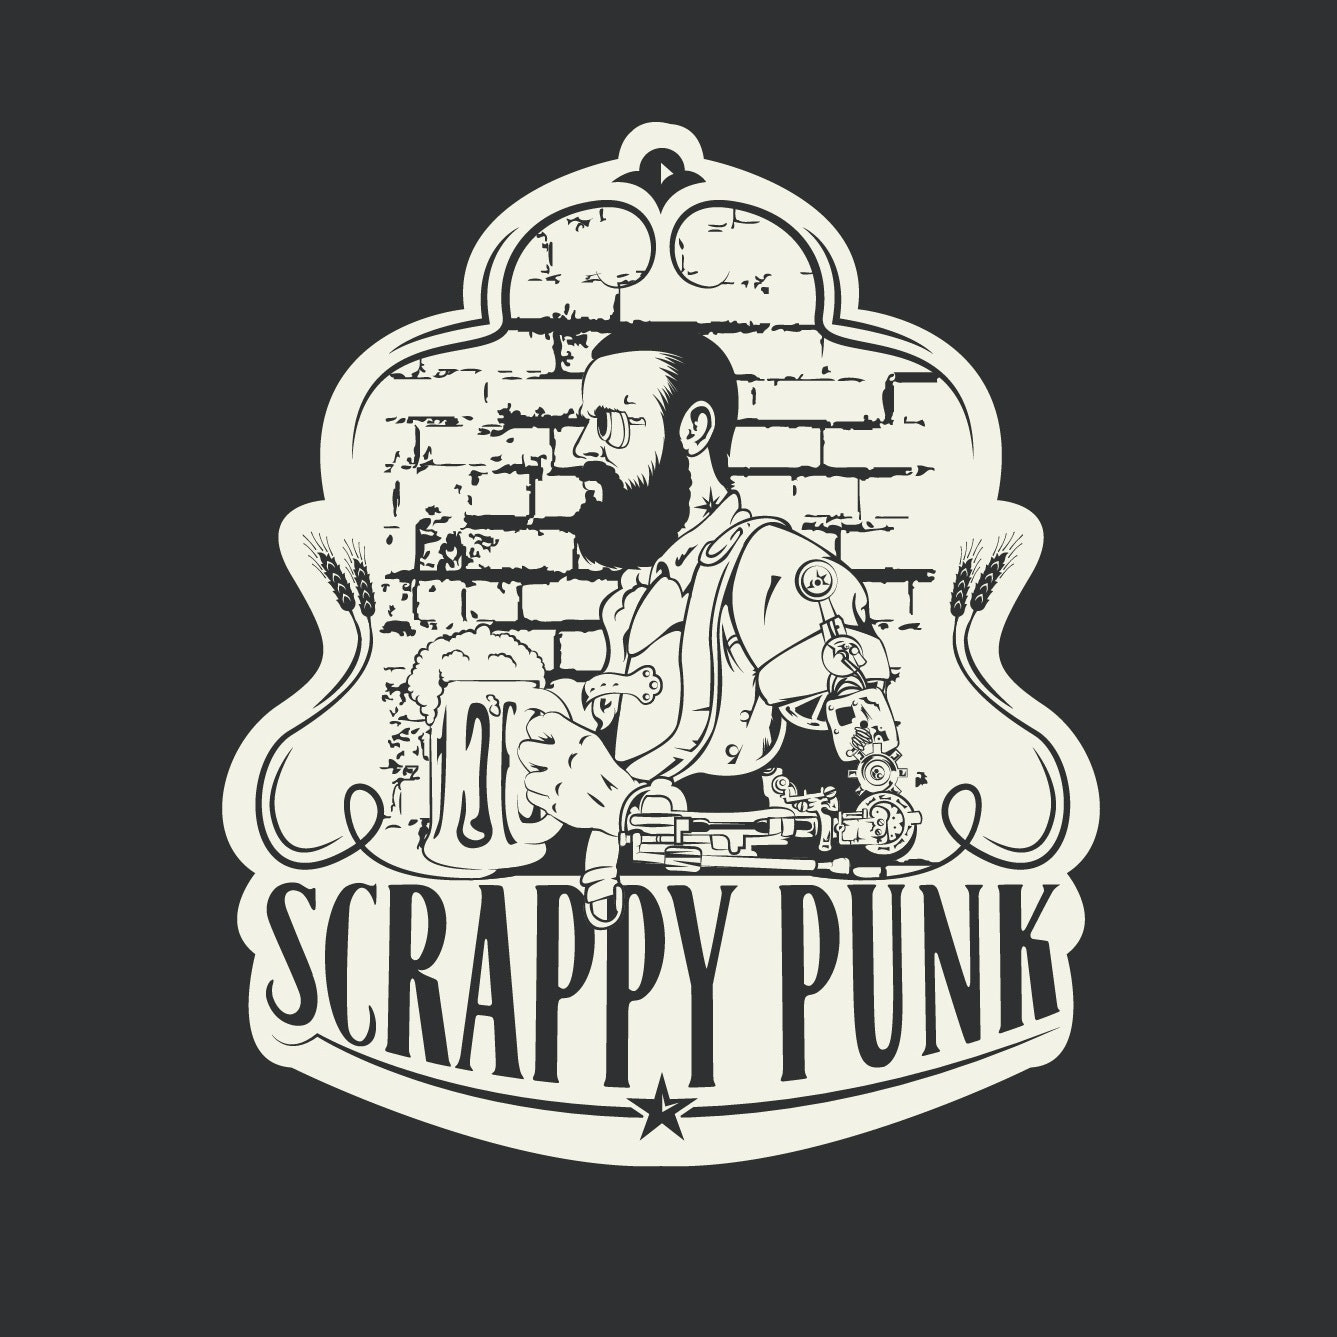 Scrappy Punk Brewery